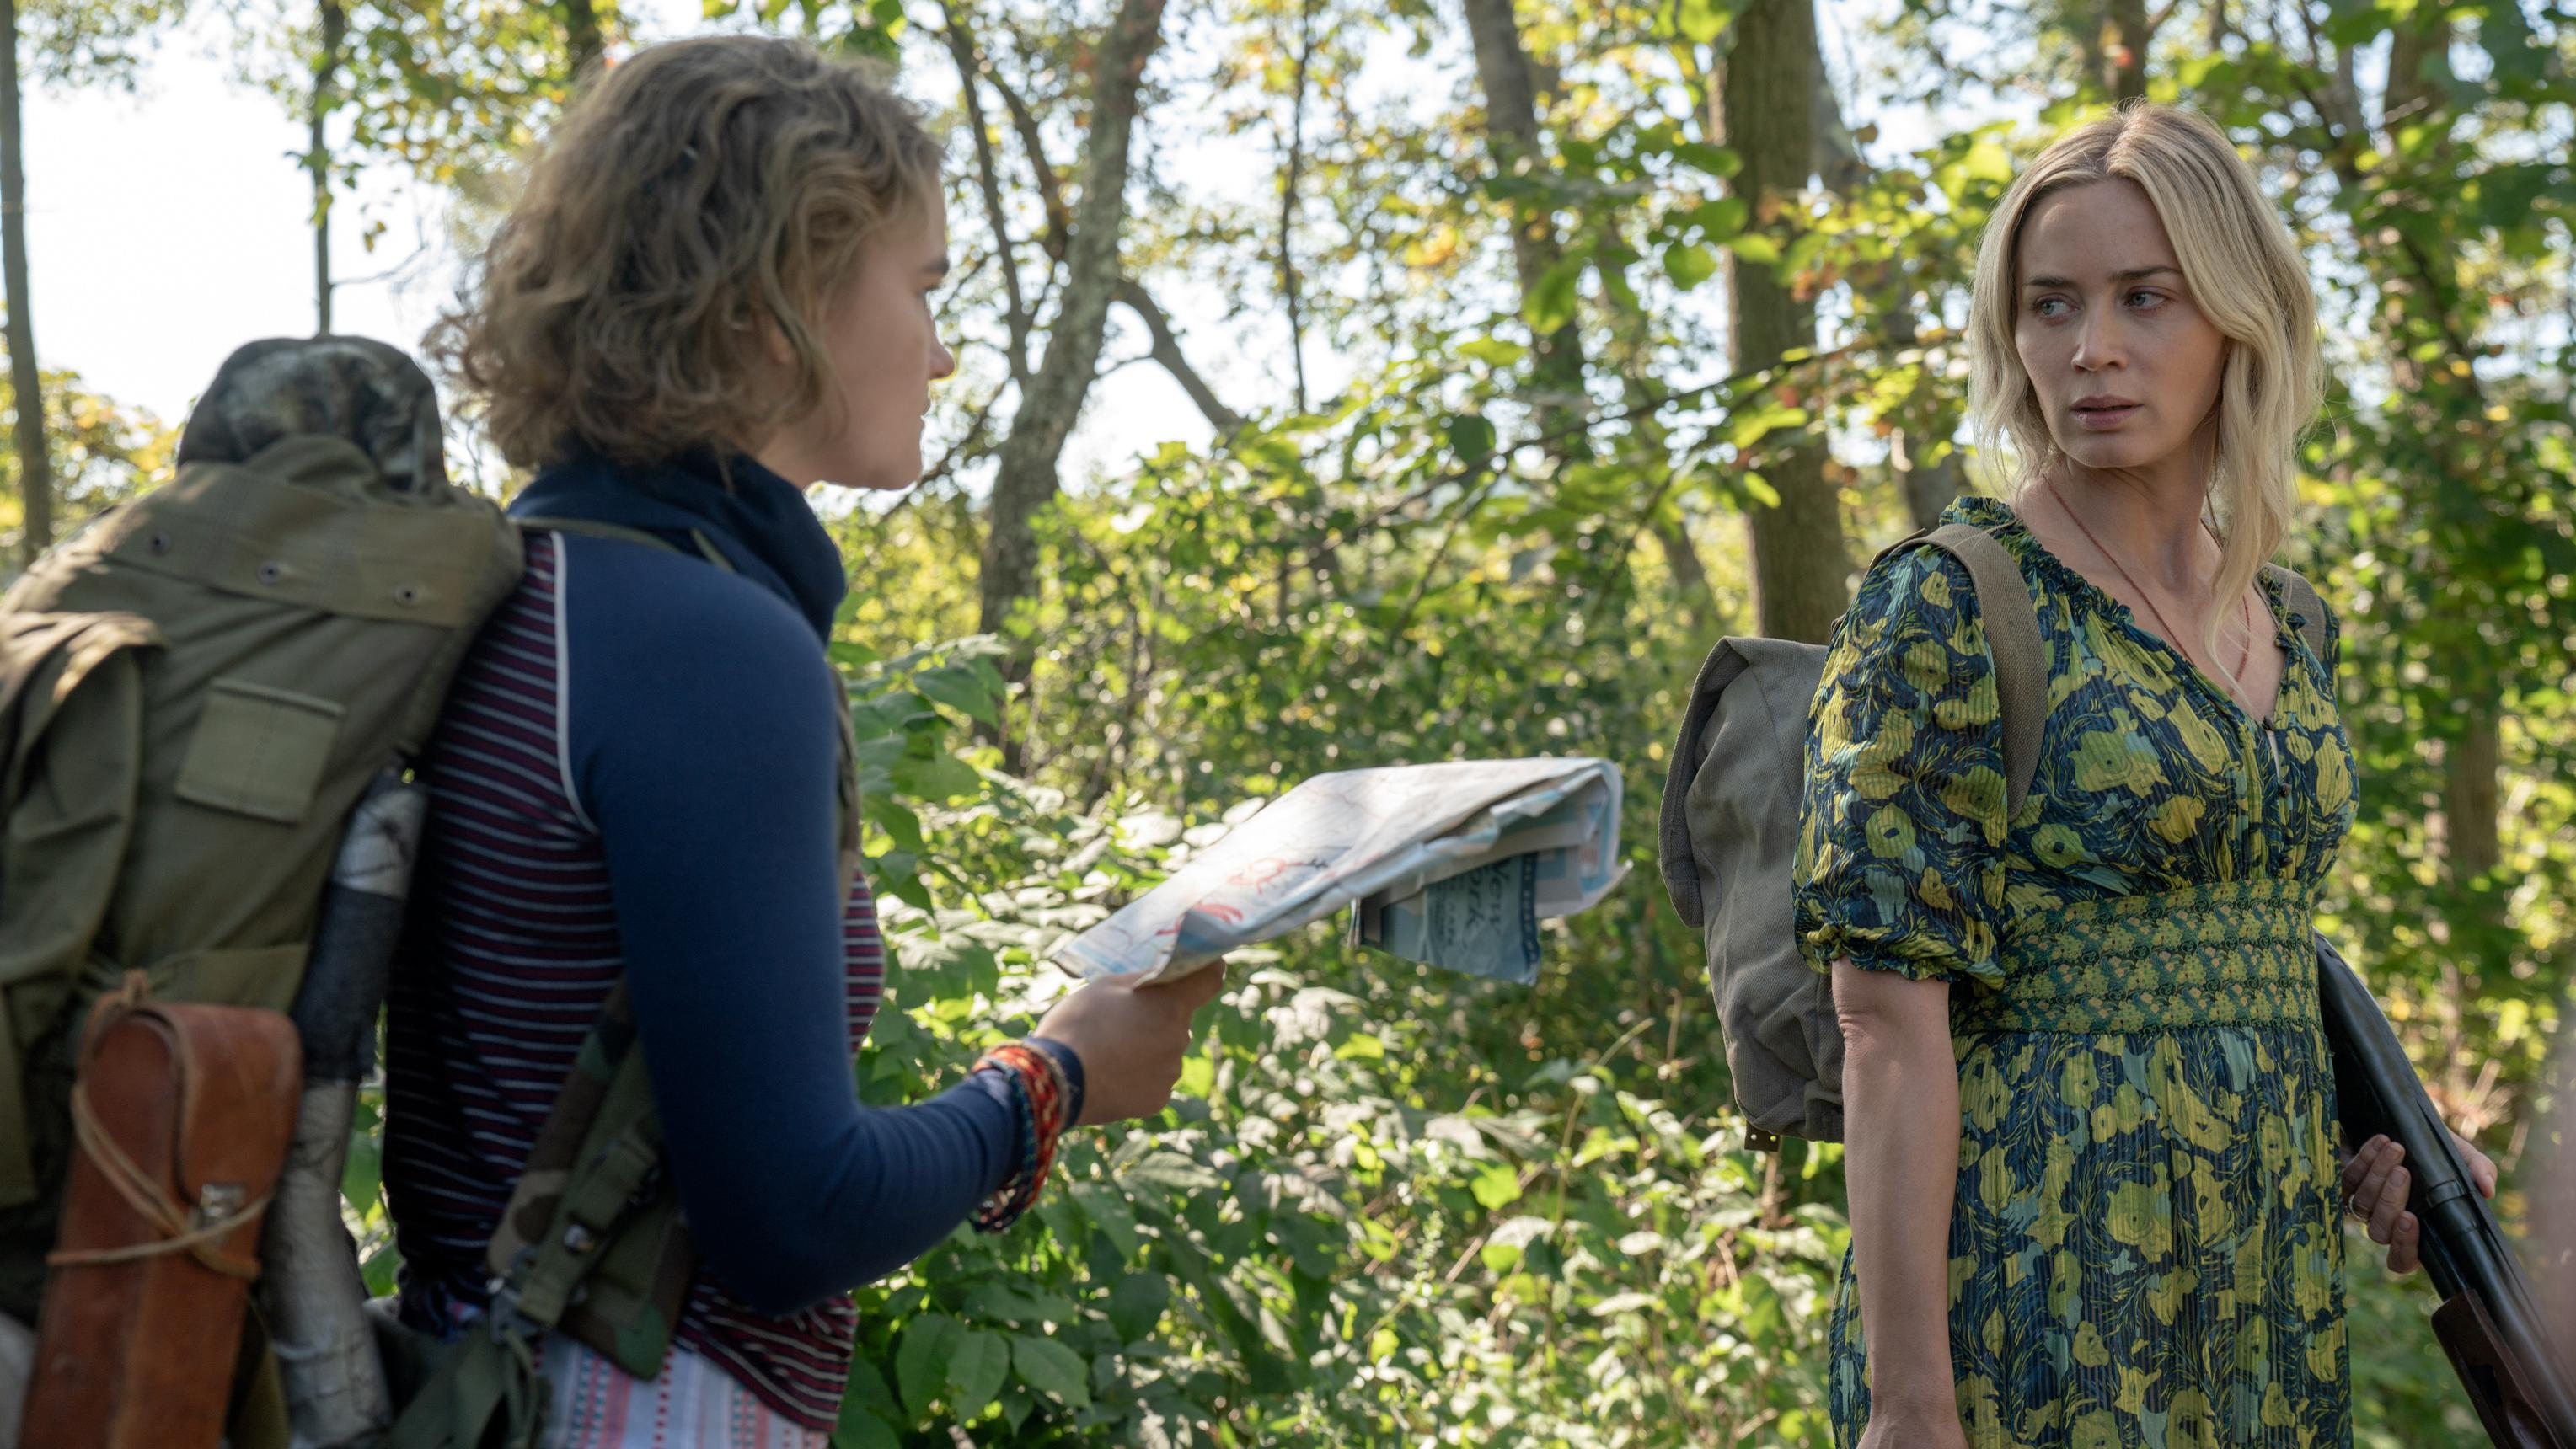 """Regan (Millicent Simmonds), left, and Evelyn (Emily Blunt) brave the unknown in ″A Quiet Place Part II."""""""